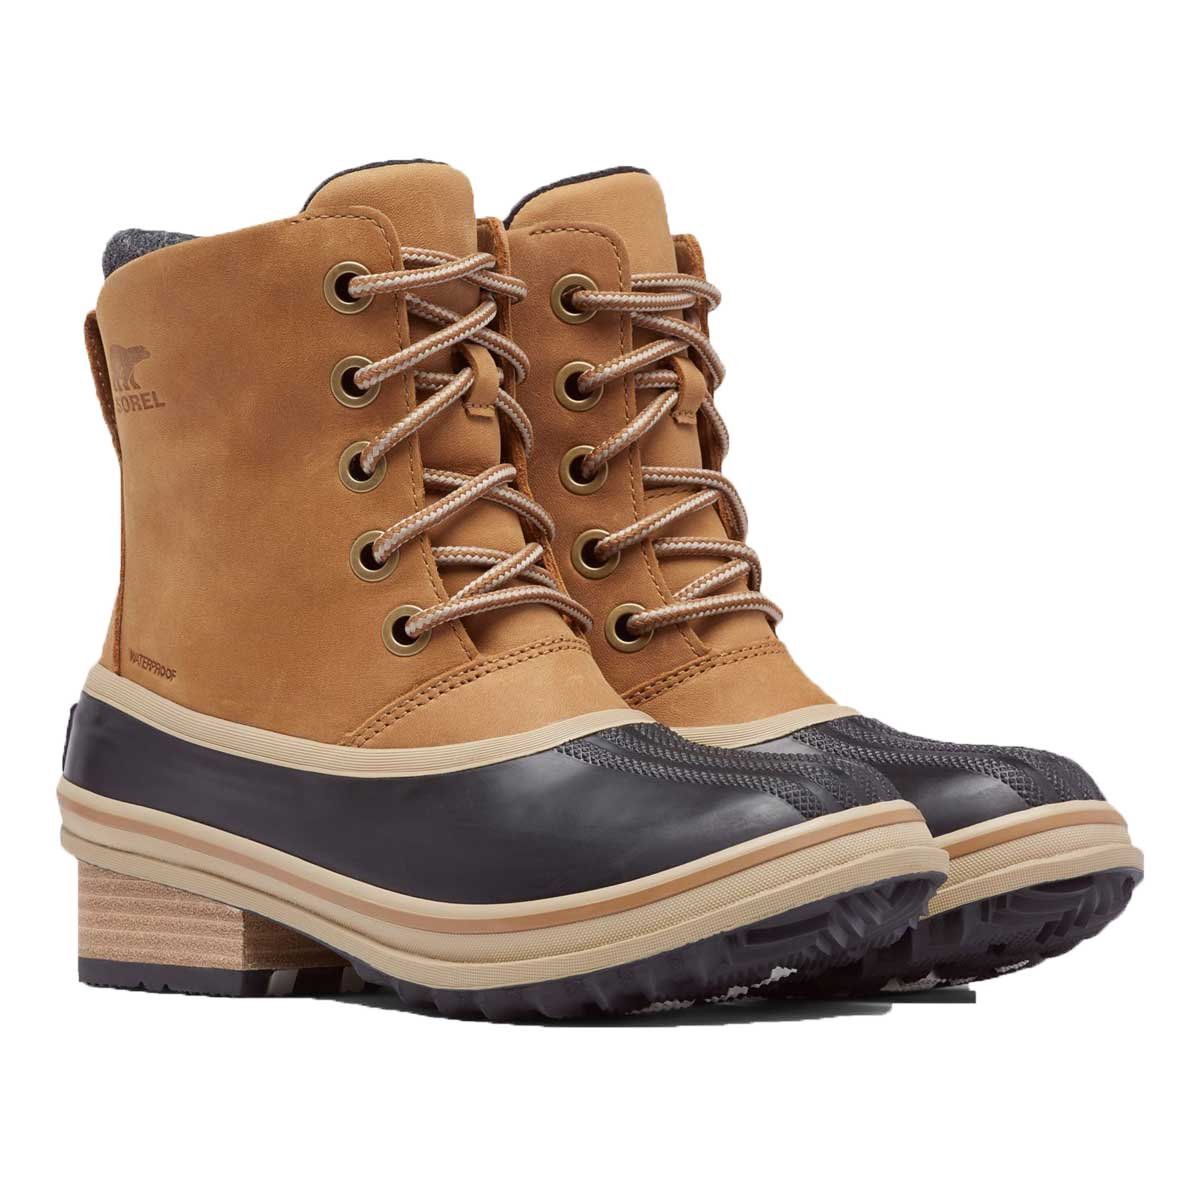 Sorel Women's Slimpack III Lace Boot in Elk